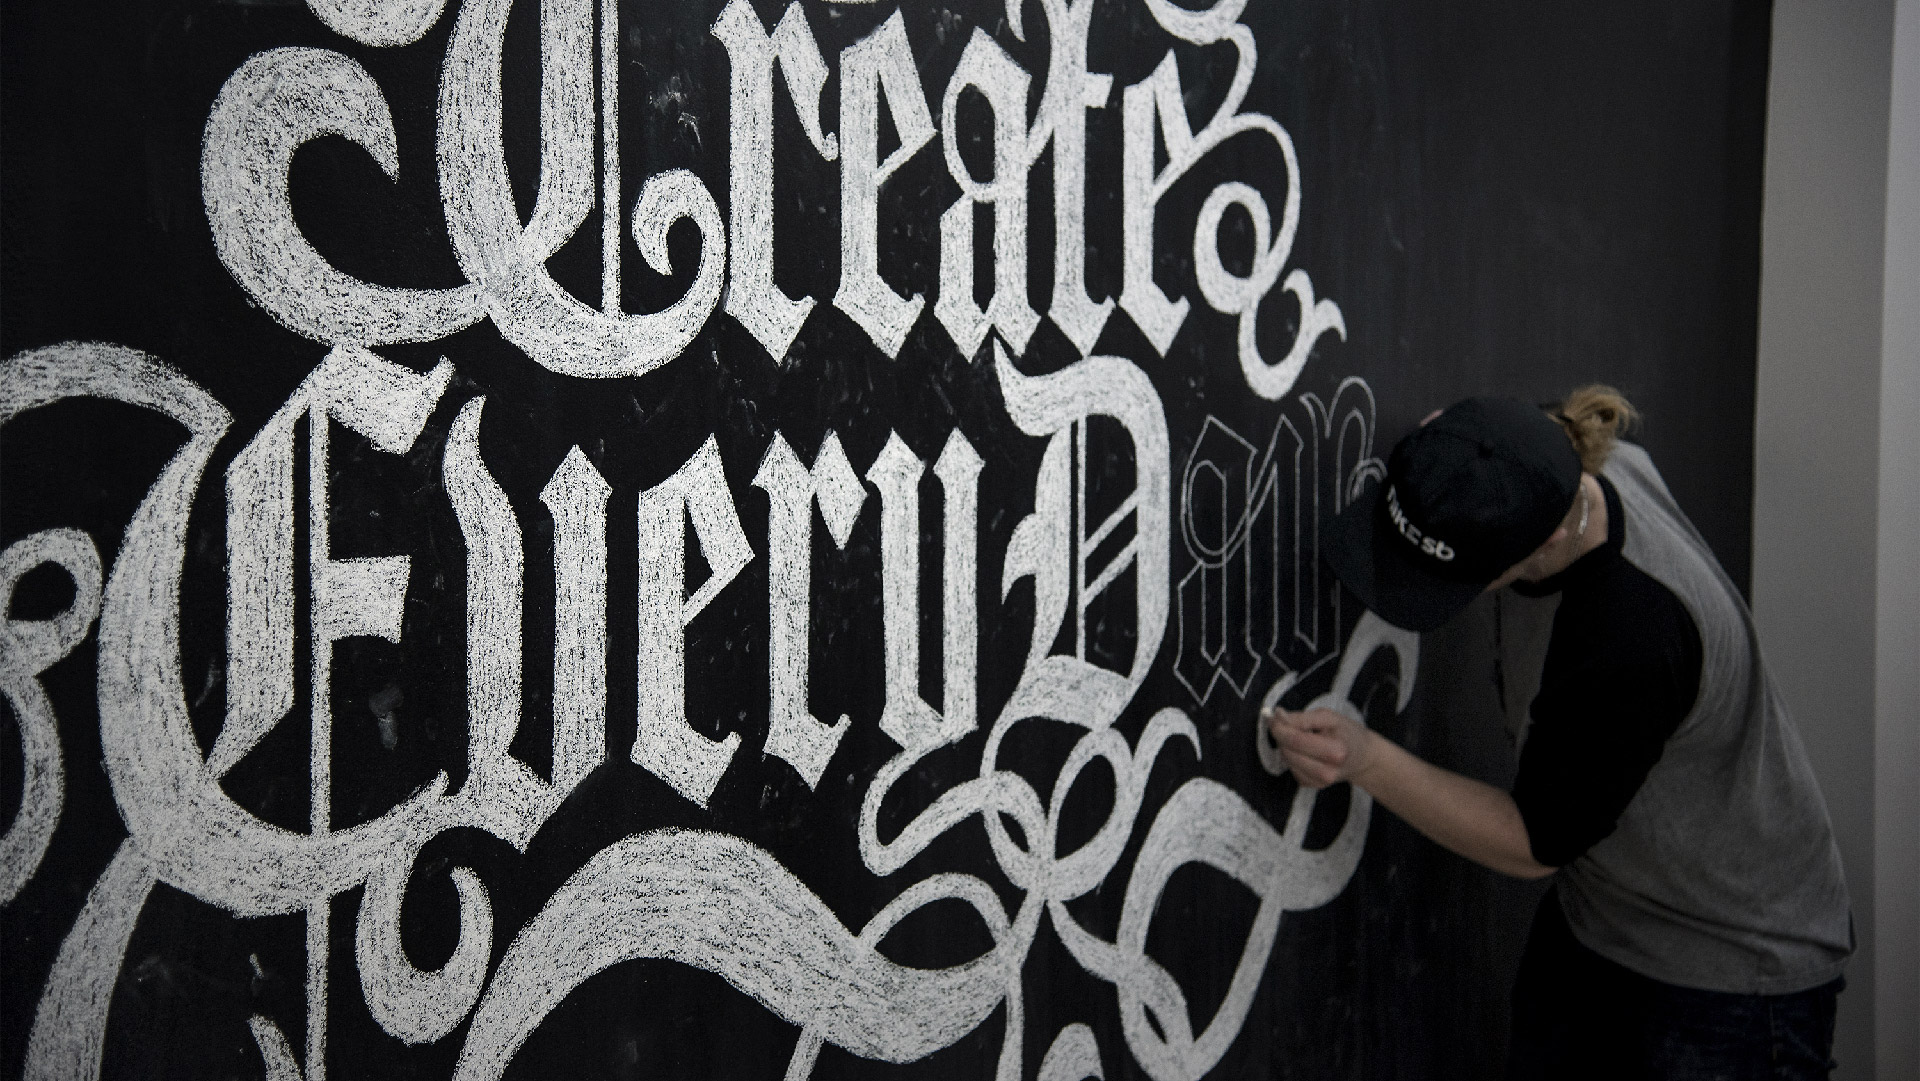 anthony mika installing create every day chalk mural at tyger shark